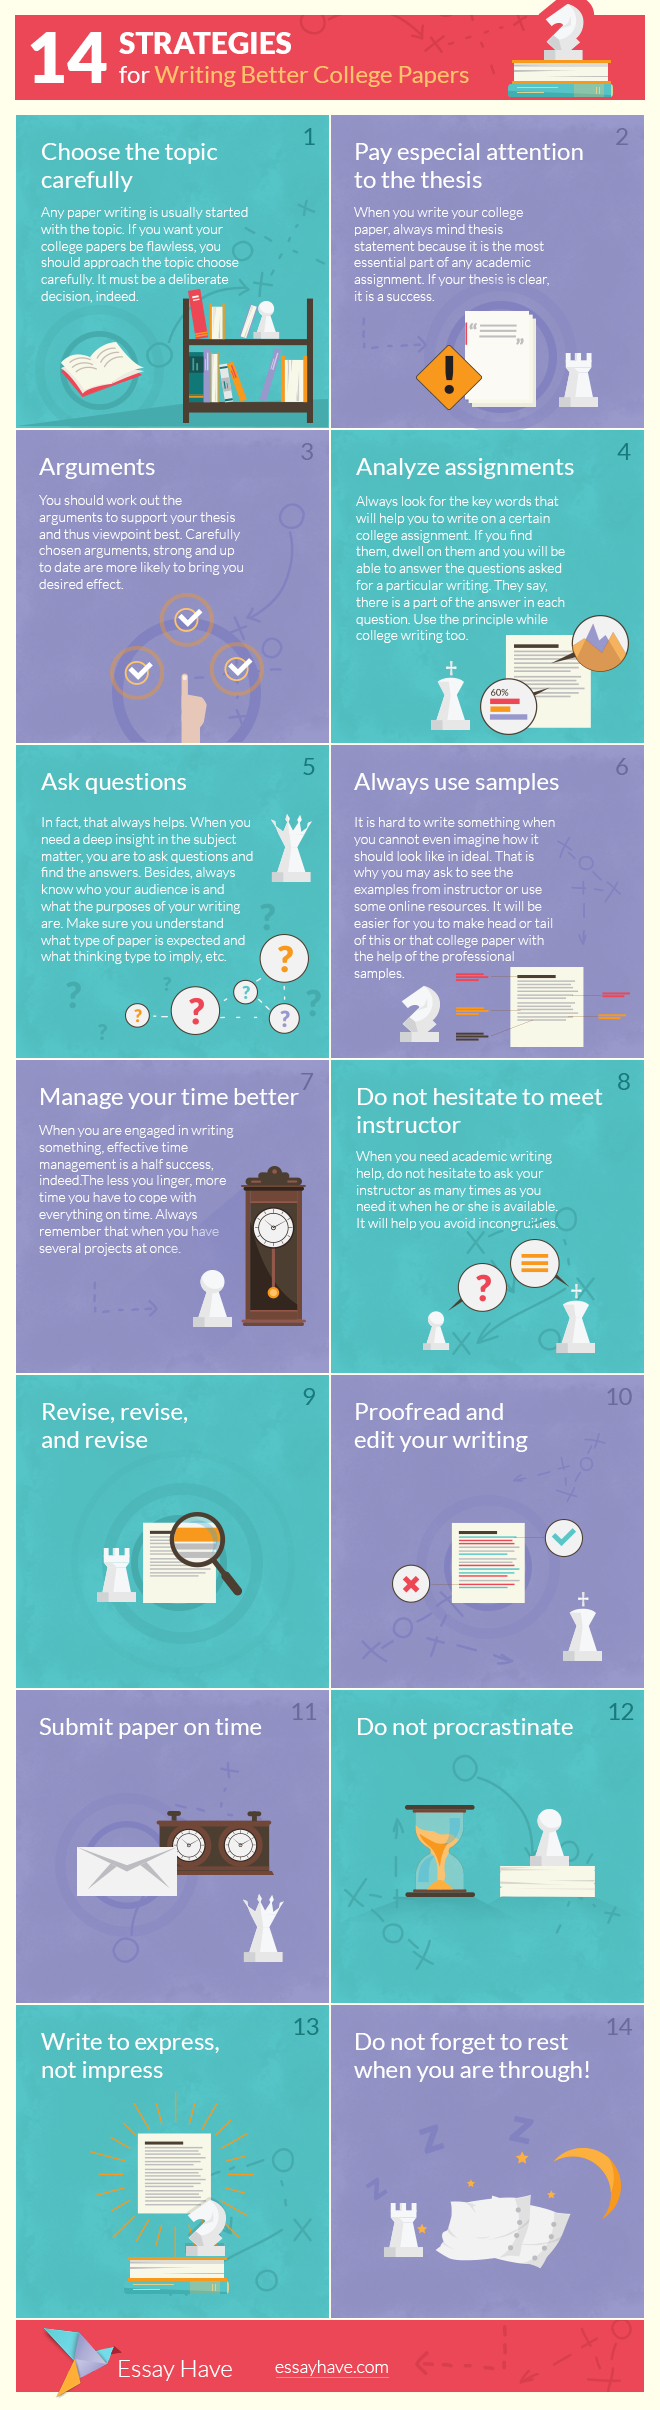 infographic: 14 Strategies for Writing Better College Papers